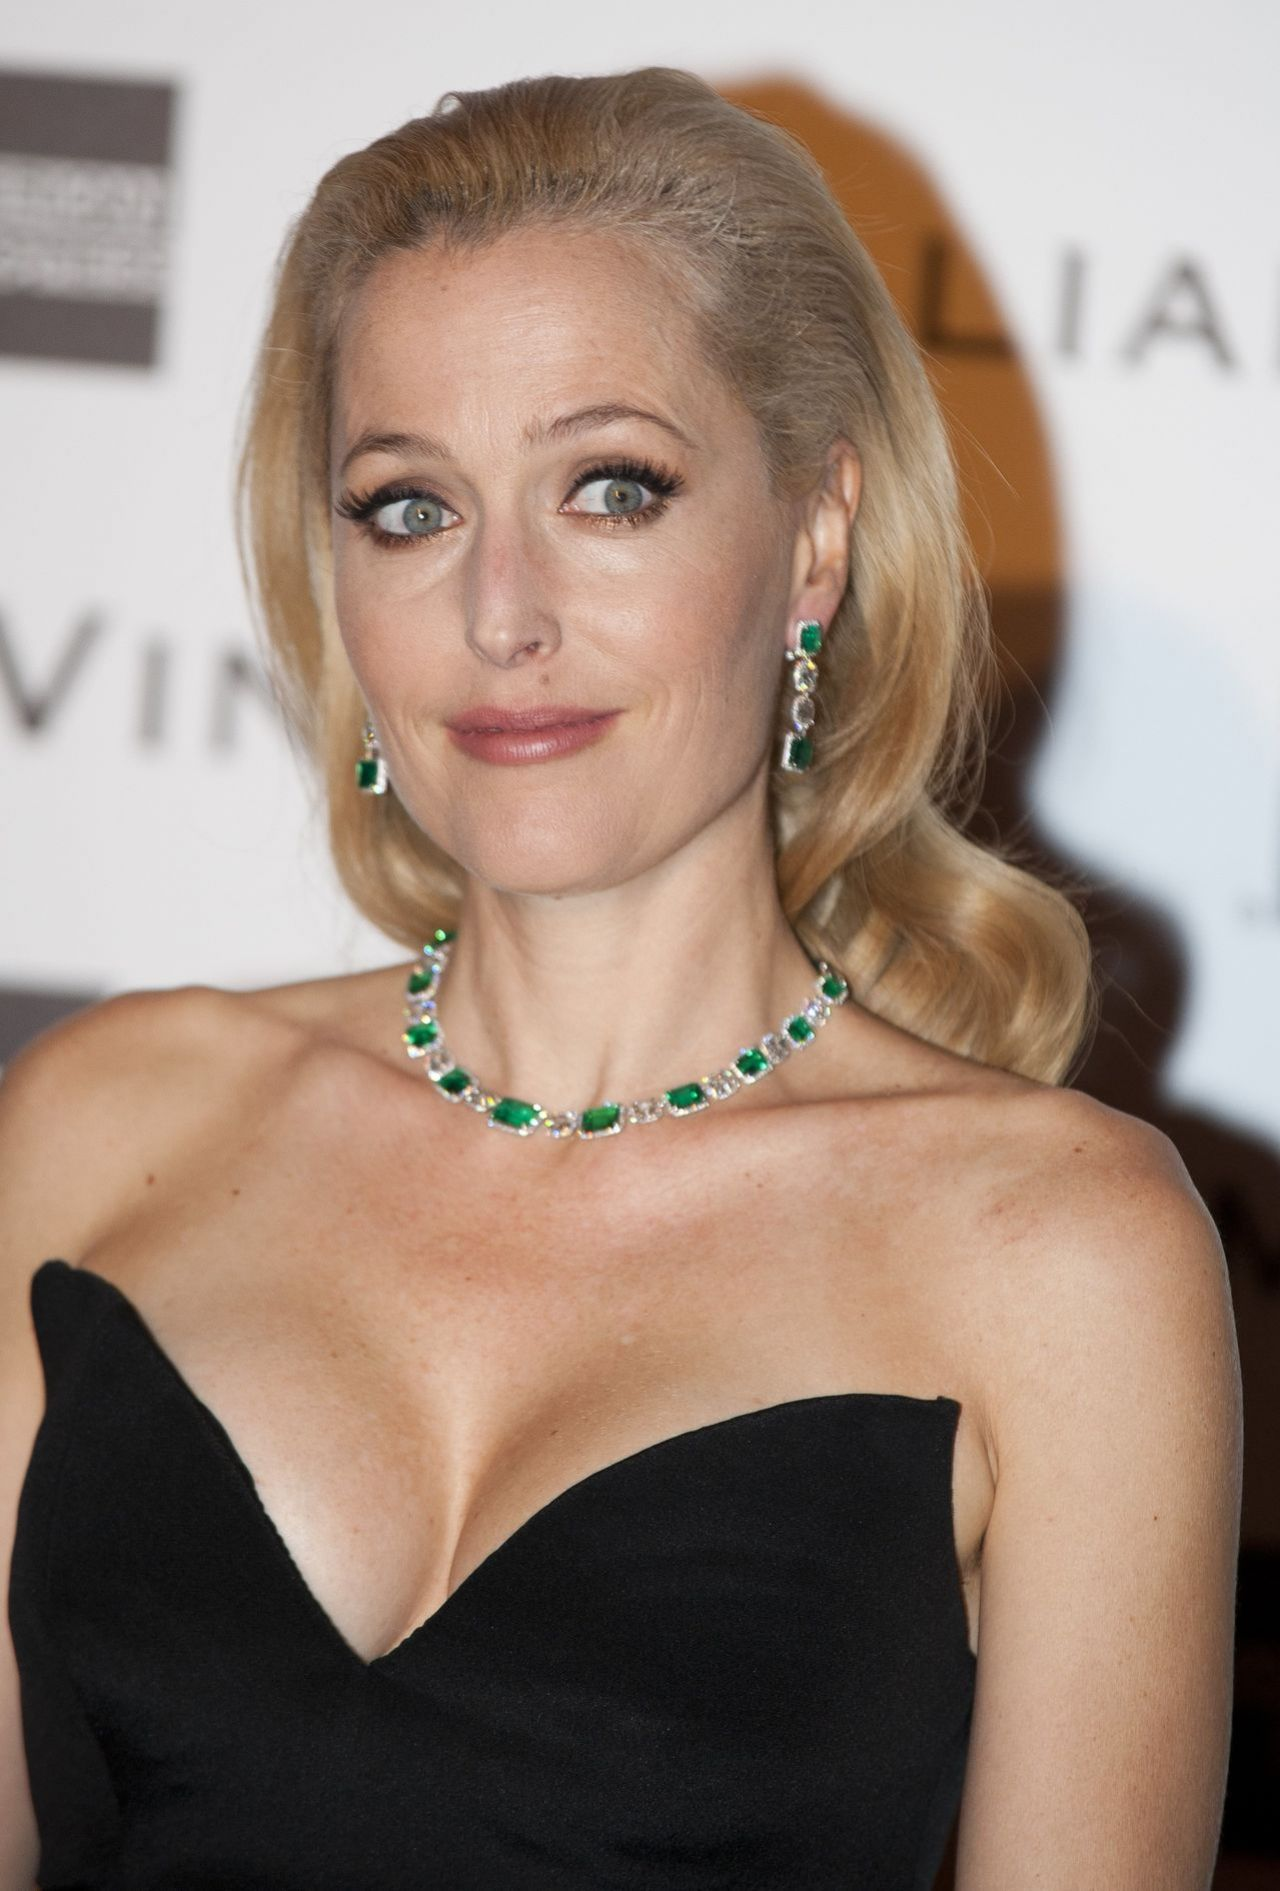 Gillian Anderson - Cleavy at pre-BAFTA Dinner in London - February 2014